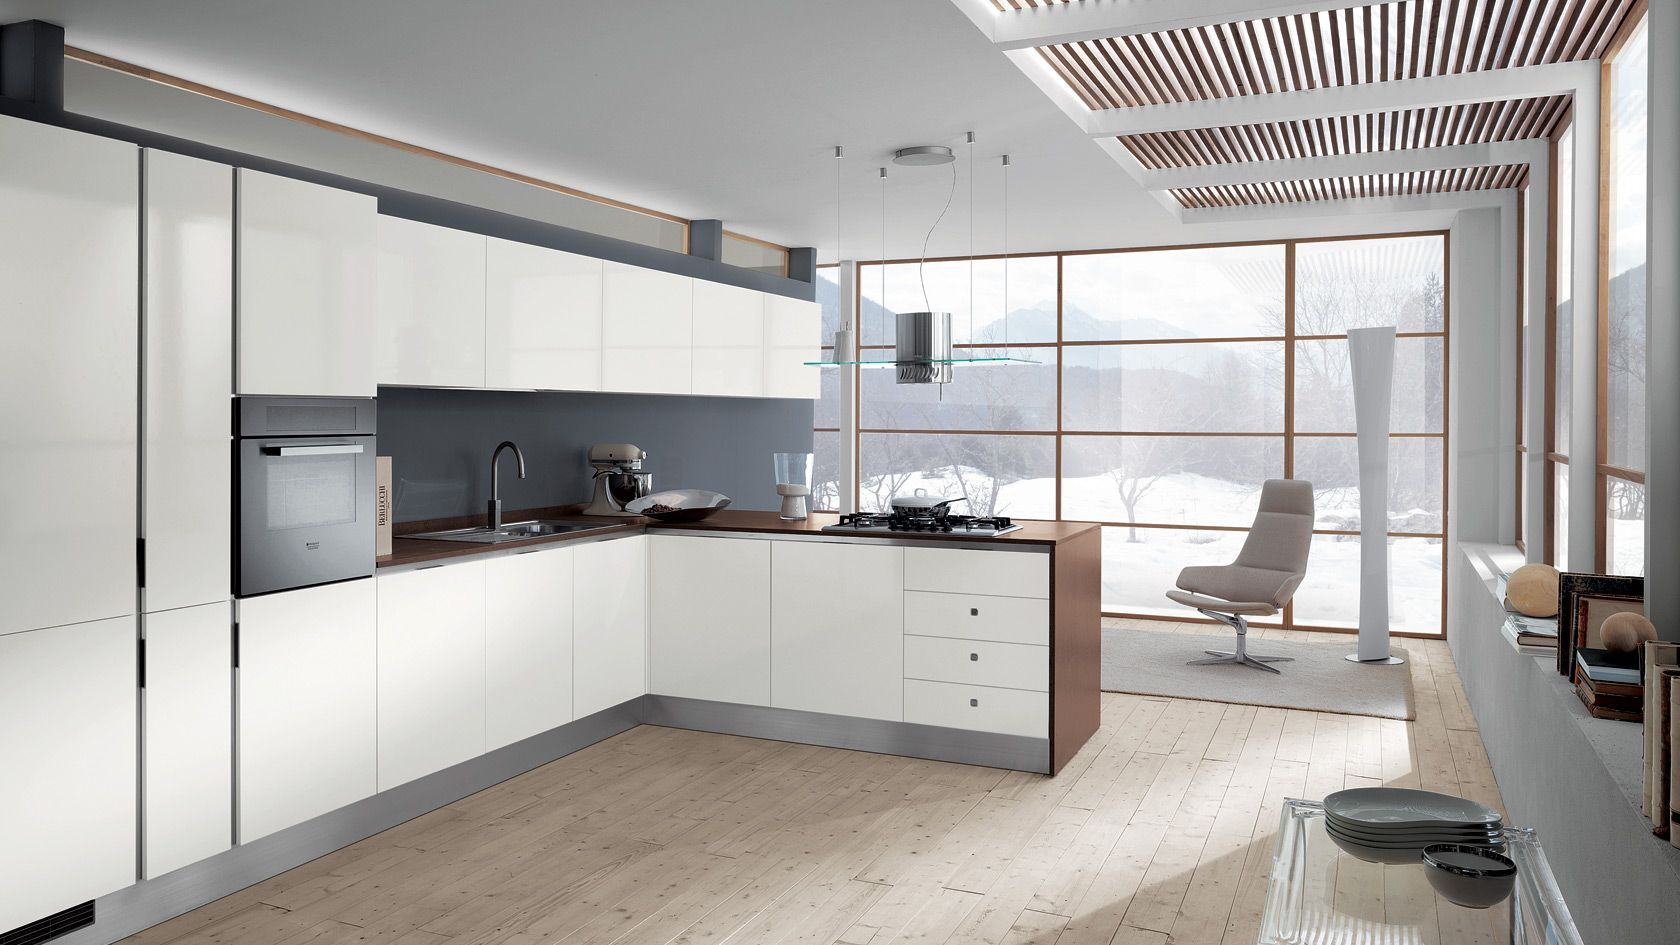 scavolini mood kitchen light scavolini contemporary kitchen. | The Contemporary Spirit Can Also Be Expressed By Selecting A Distinctive Colour: Red, For Example, Used On Number Of Lacquered Doors And\u2026 Scavolini Mood Kitchen Light